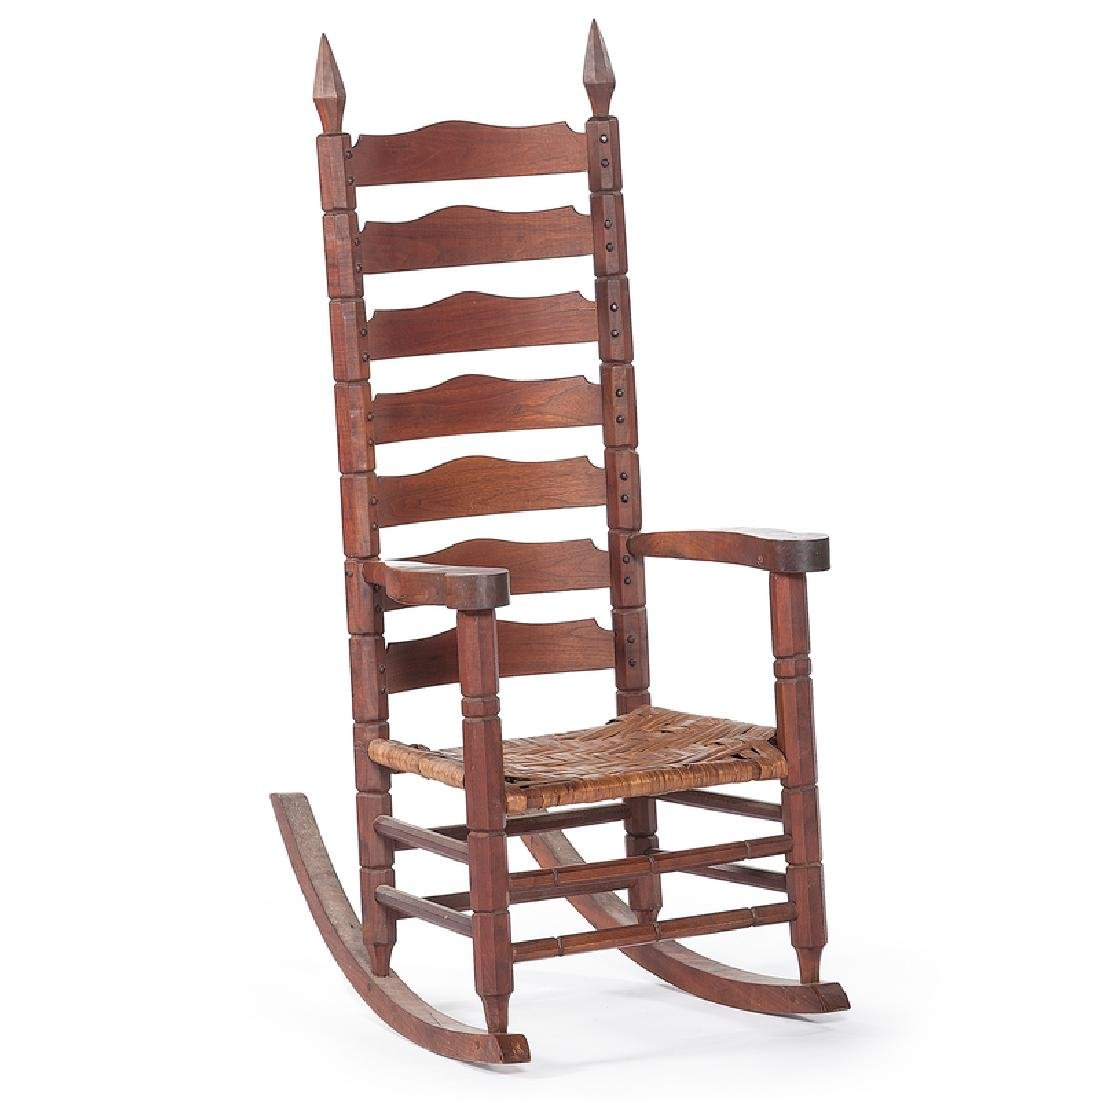 Chester Cornett Folk Art Rocking Chair